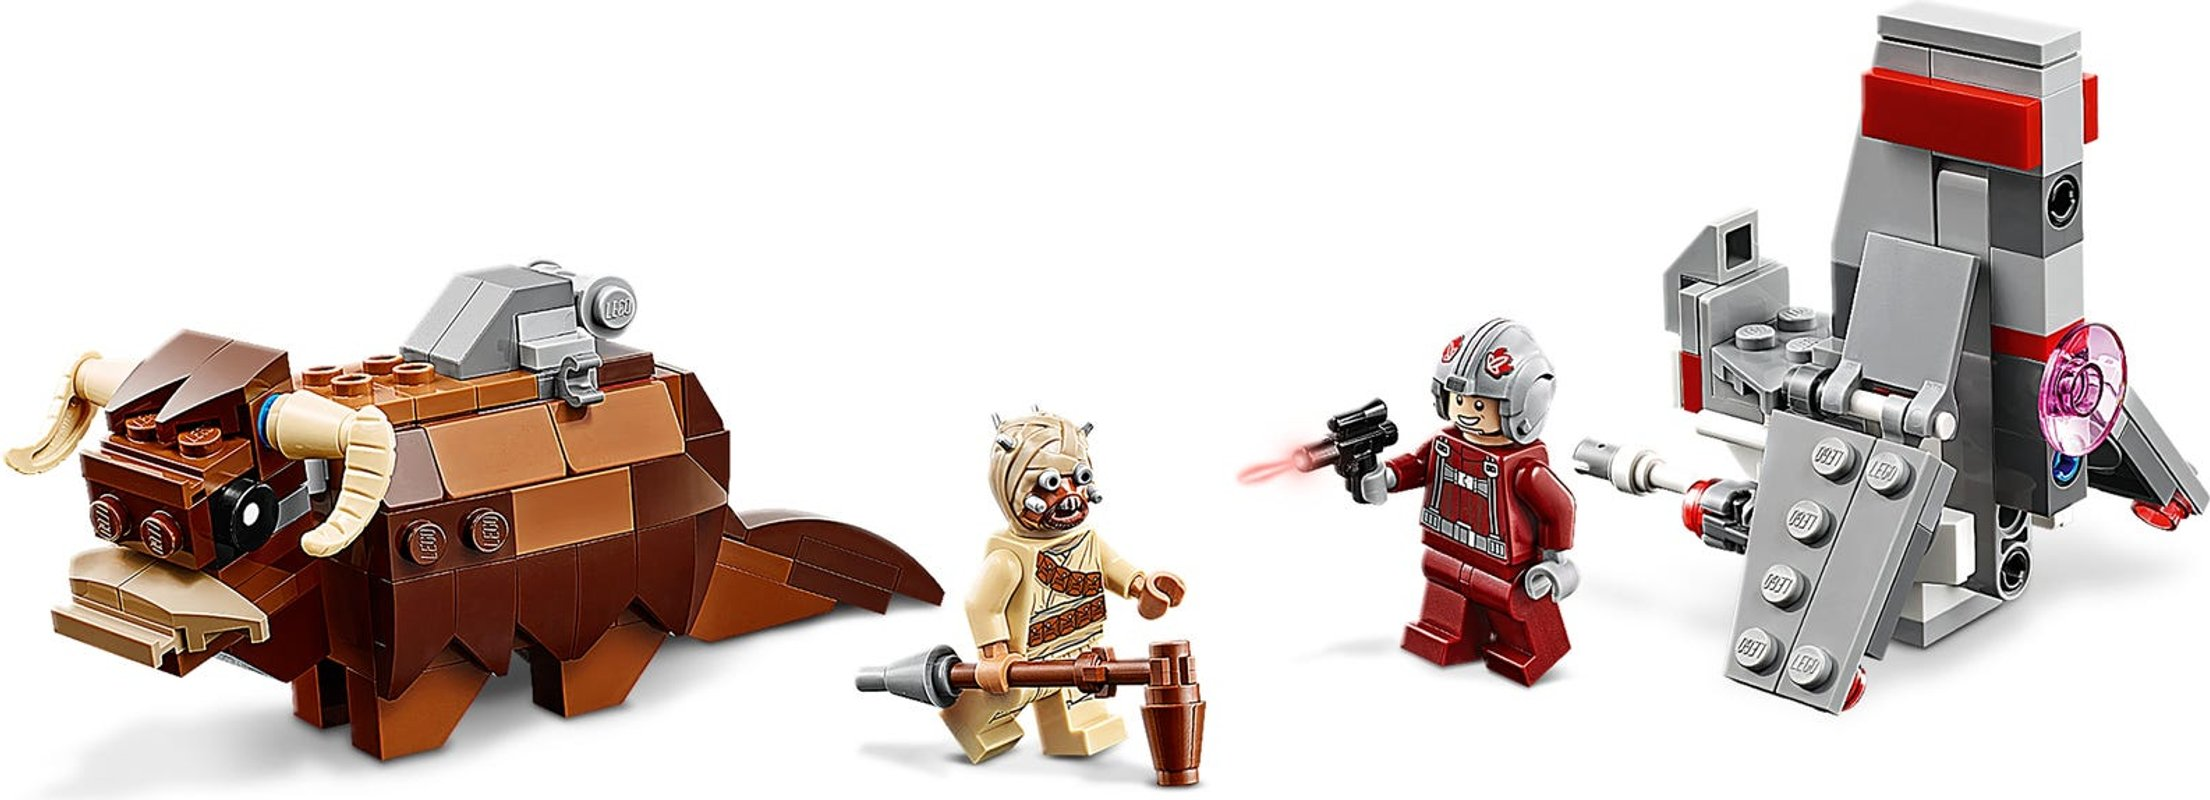 T-16 Skyhopper™ vs Bantha™ Microfighters components